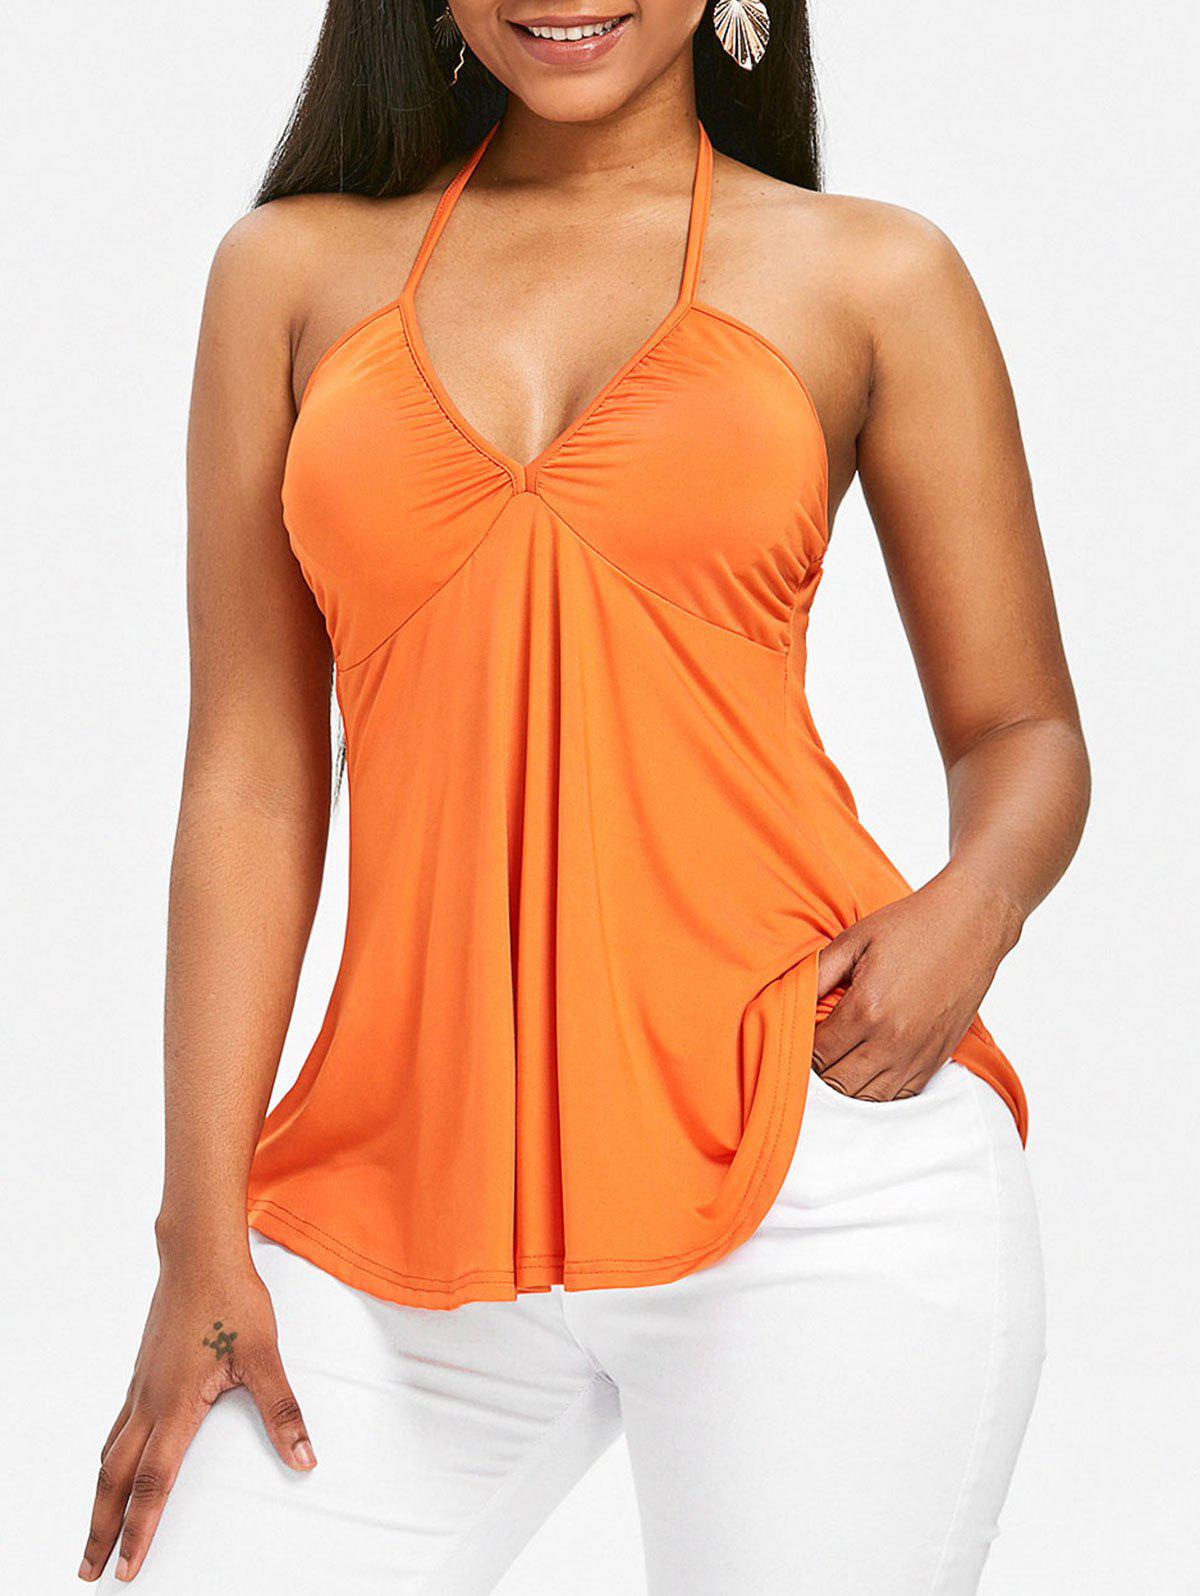 Store Halter Neck Backless Cami Top